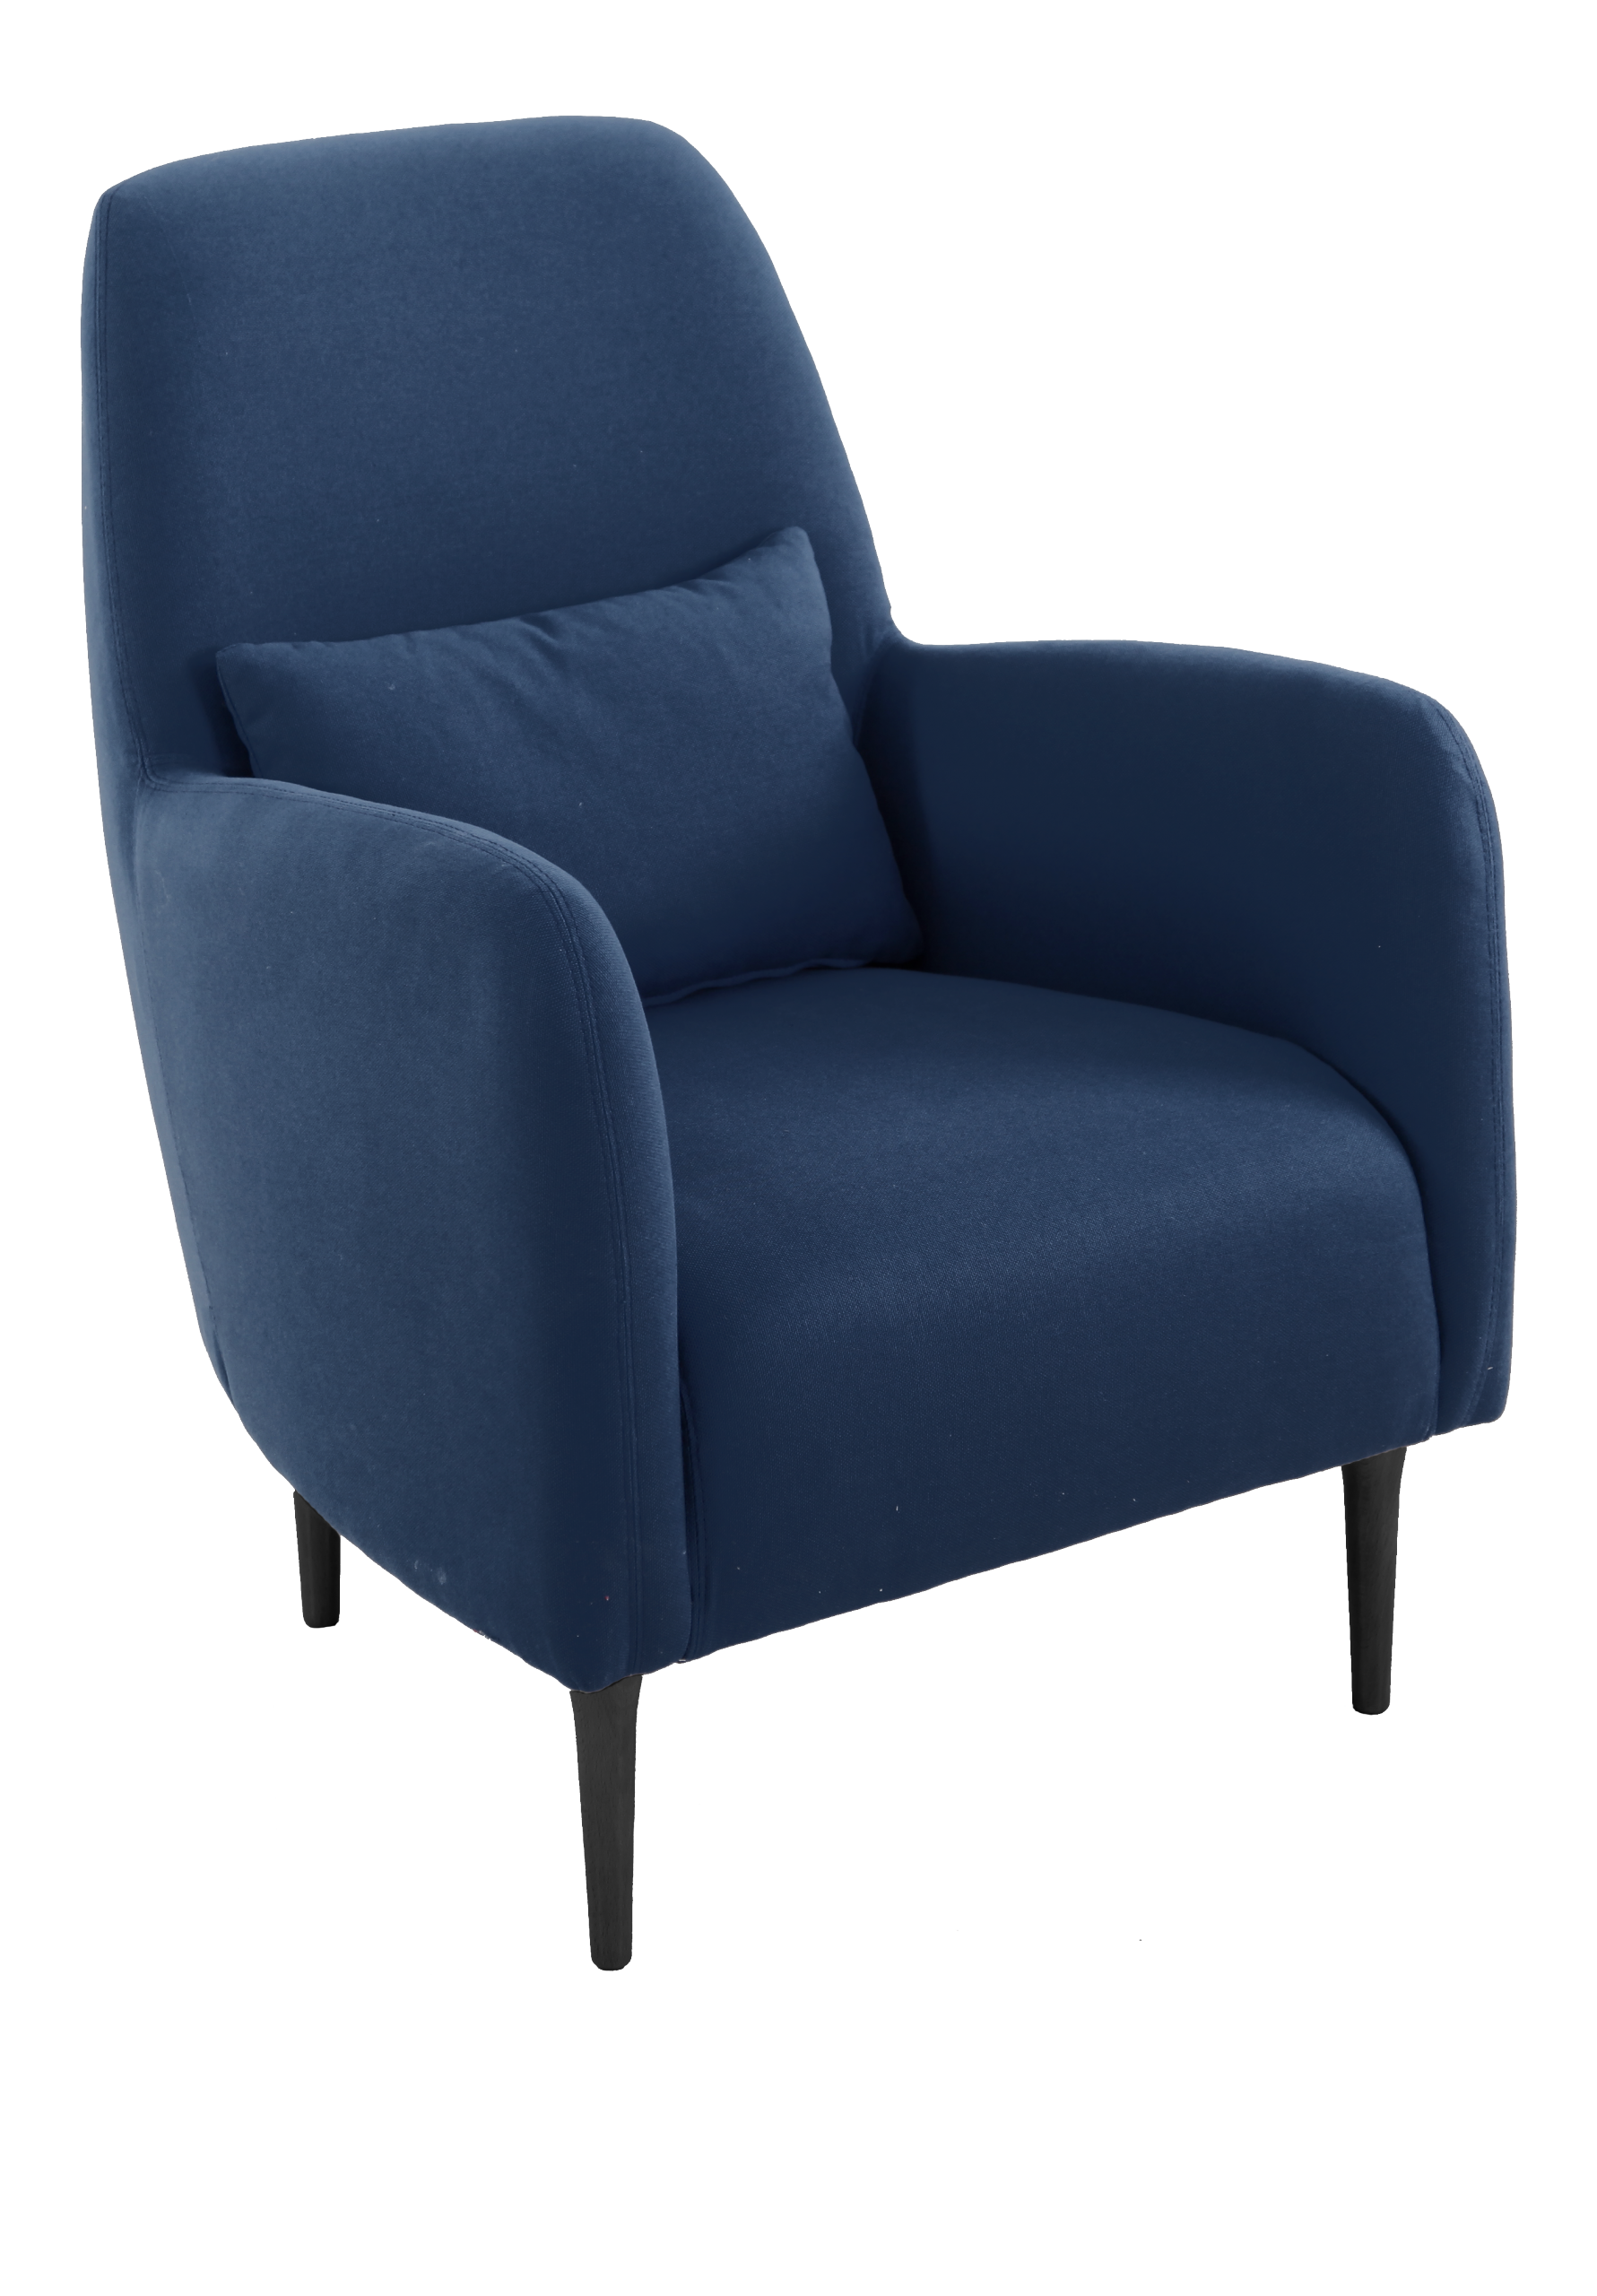 daborn fauteuils fauteuil bleu marine tissu home sweet home pinterest fauteuil bleu bleu. Black Bedroom Furniture Sets. Home Design Ideas